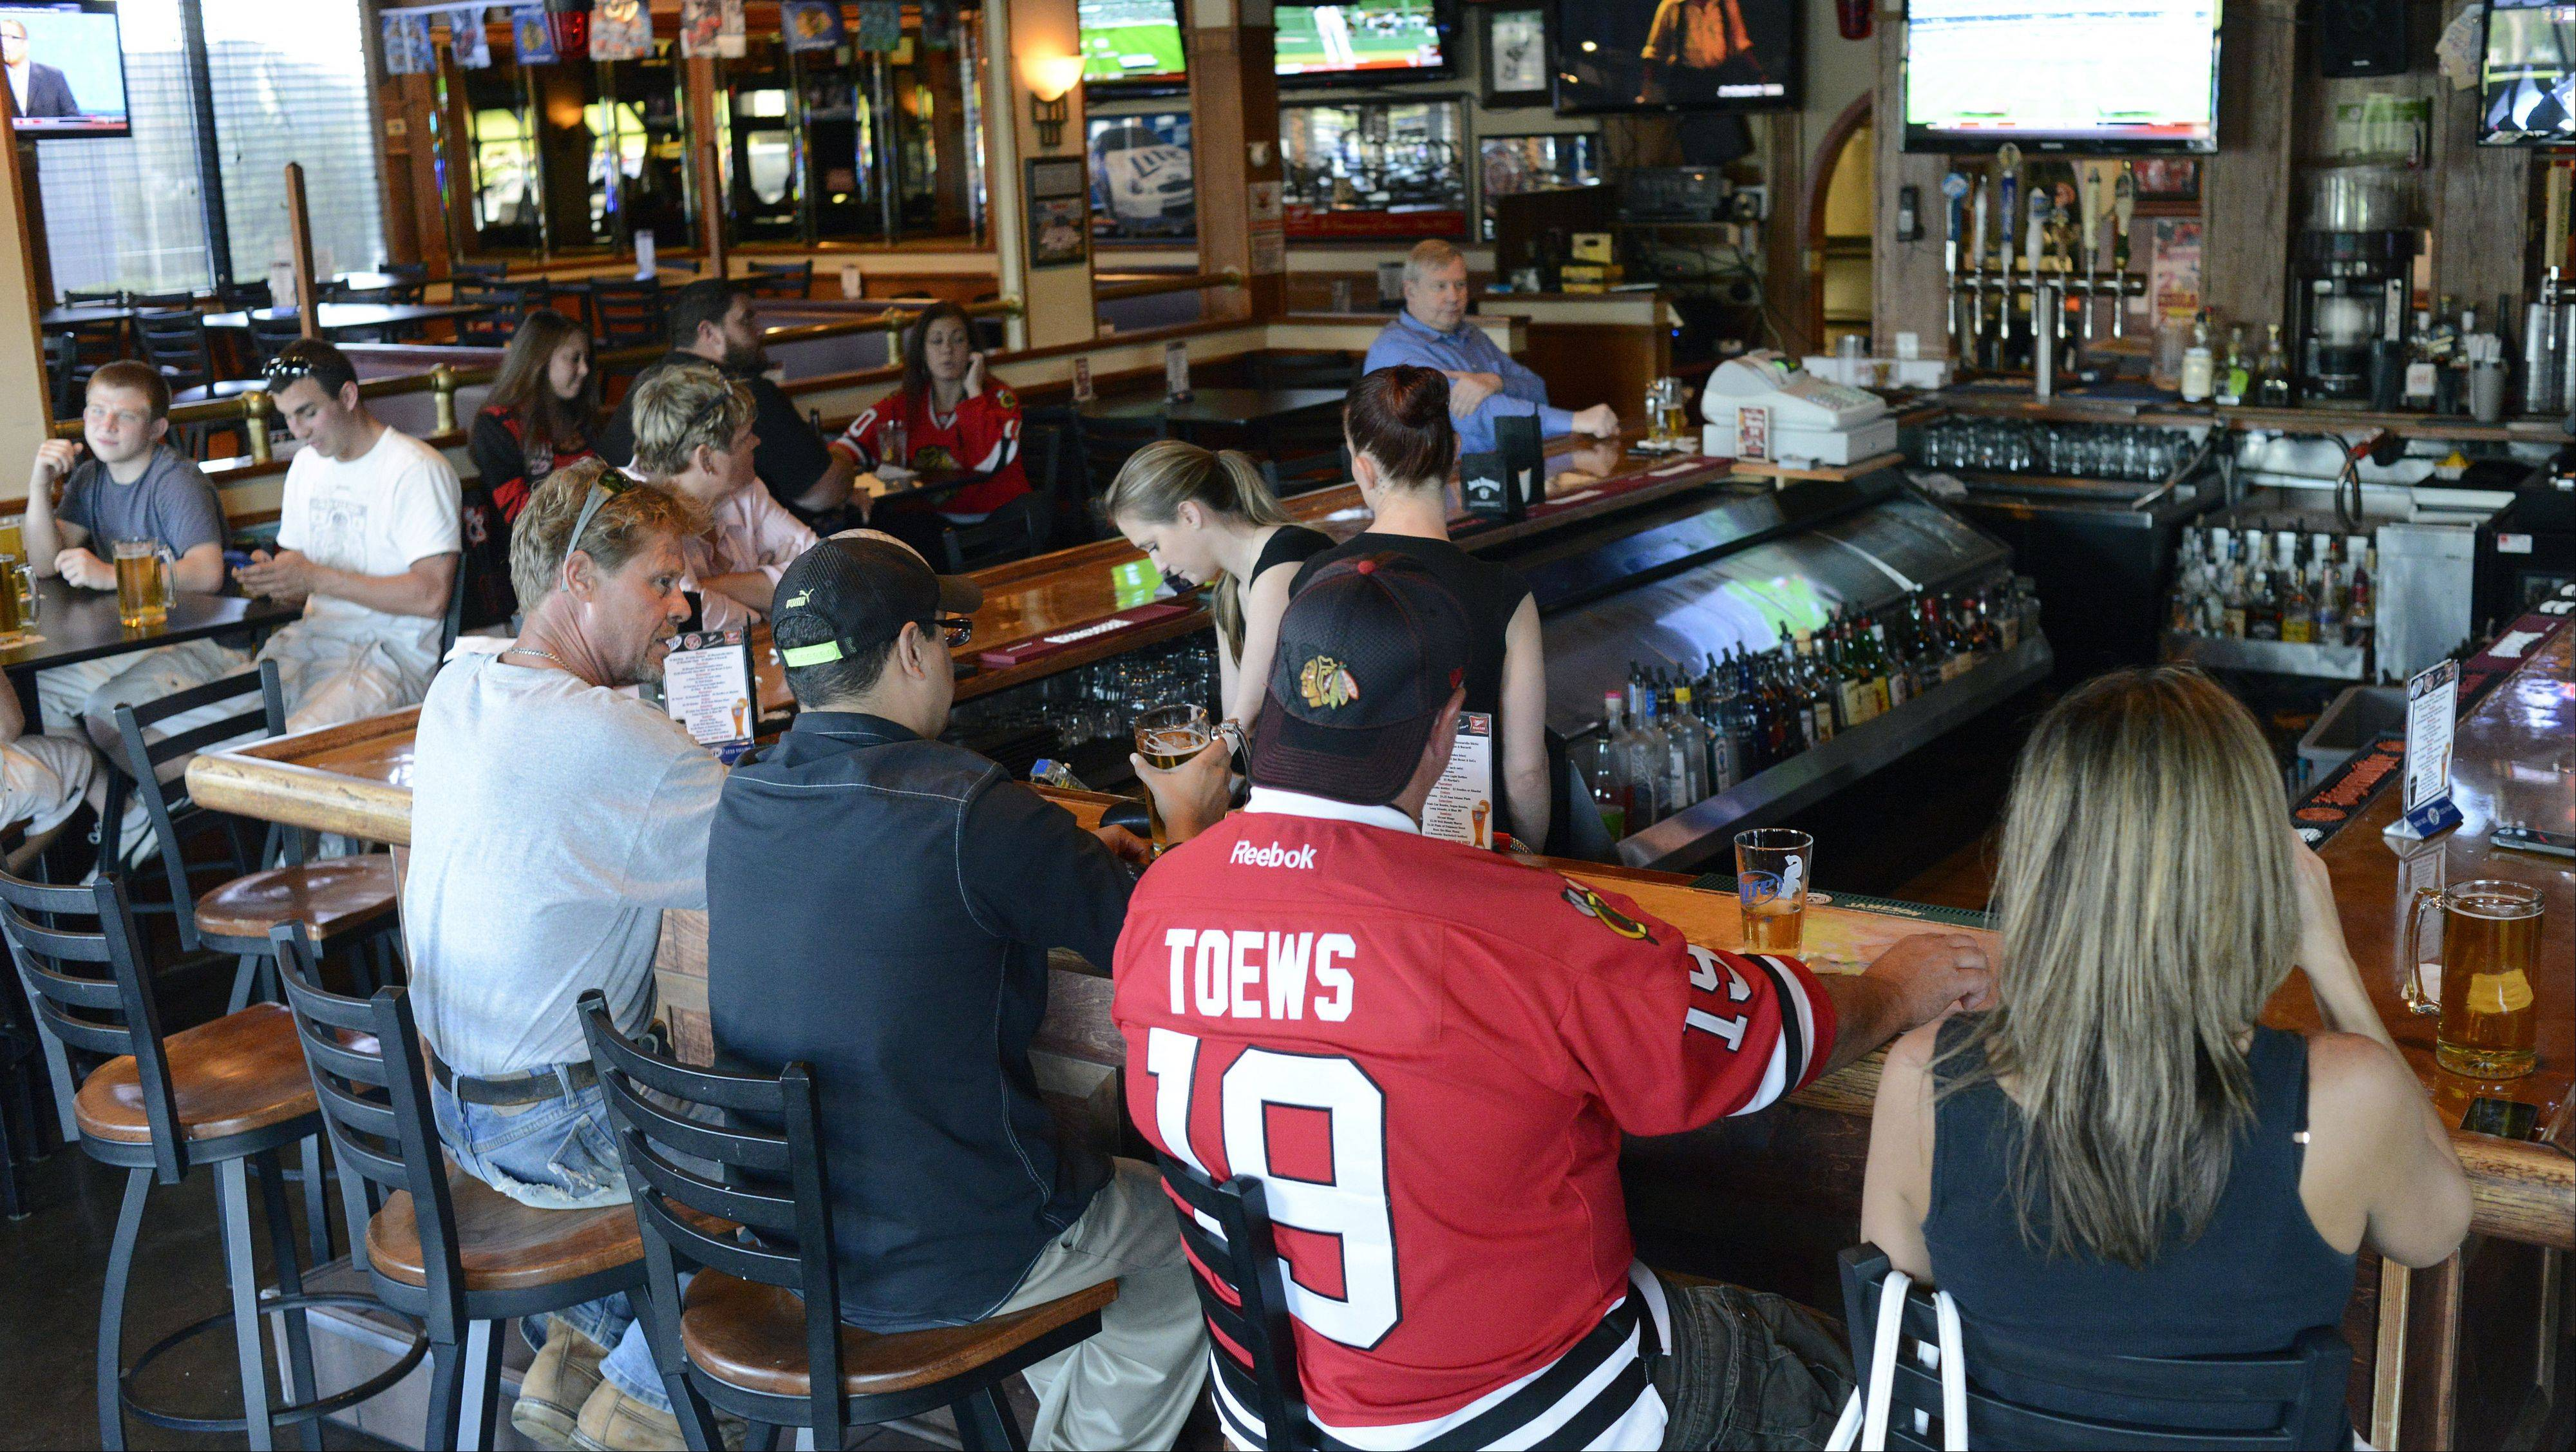 Regular customer Scott Kennedy of Aurora wears his Jonathan Toews jersey at Chelios' Pub in Aurora.